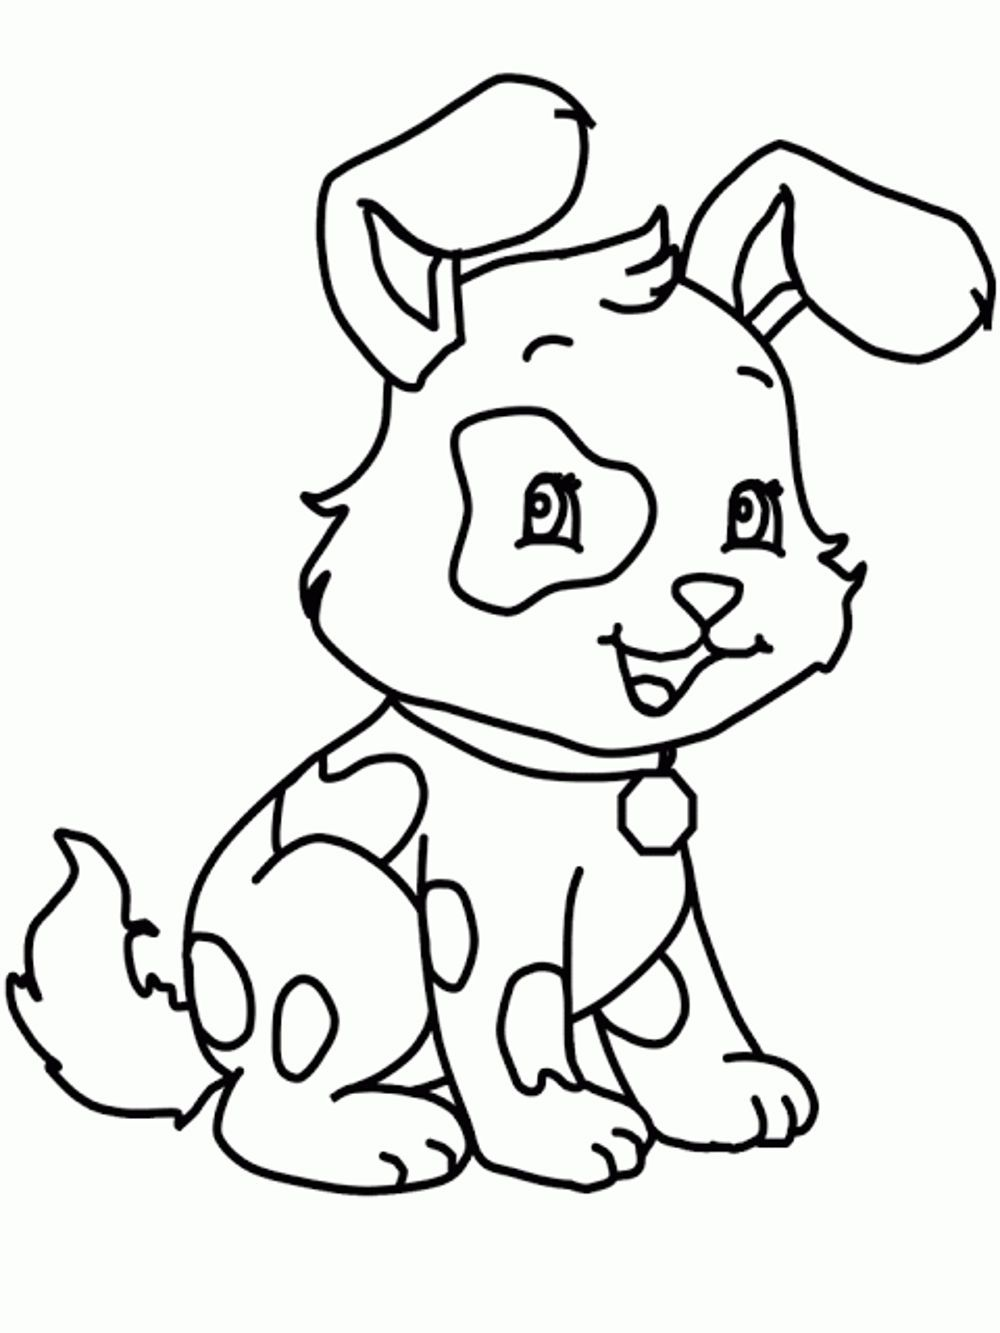 Biscuit The Dog Coloring Pages - Printable Kids Colouring